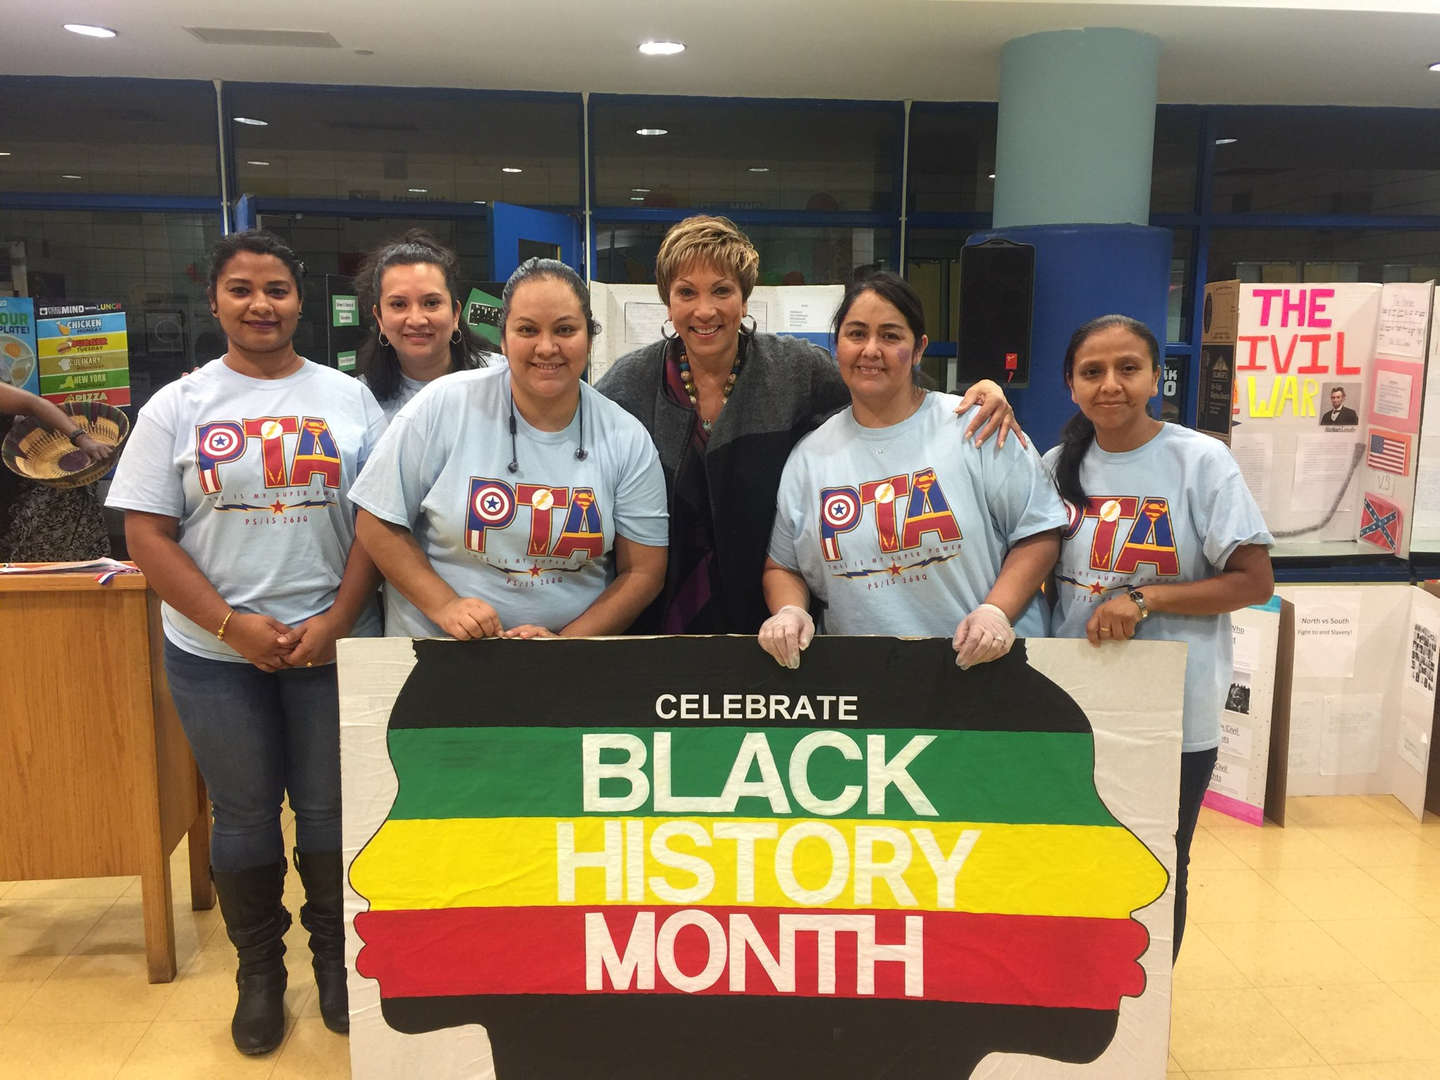 ladies pose with black history month banner